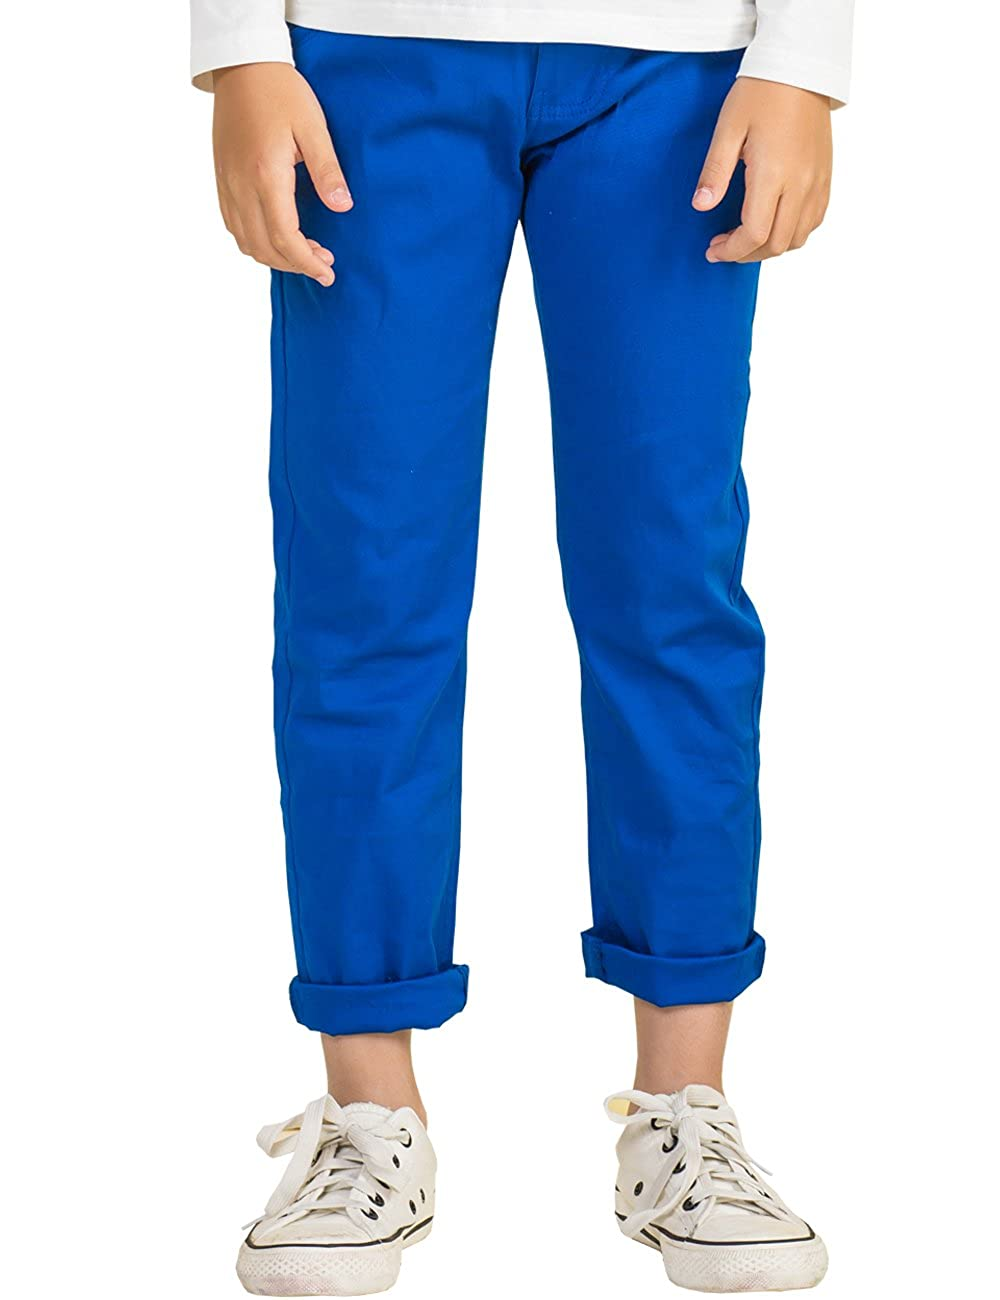 BYCR Boys Solid Color Elastic Chino Cotton Pant for Kids Size 4-16